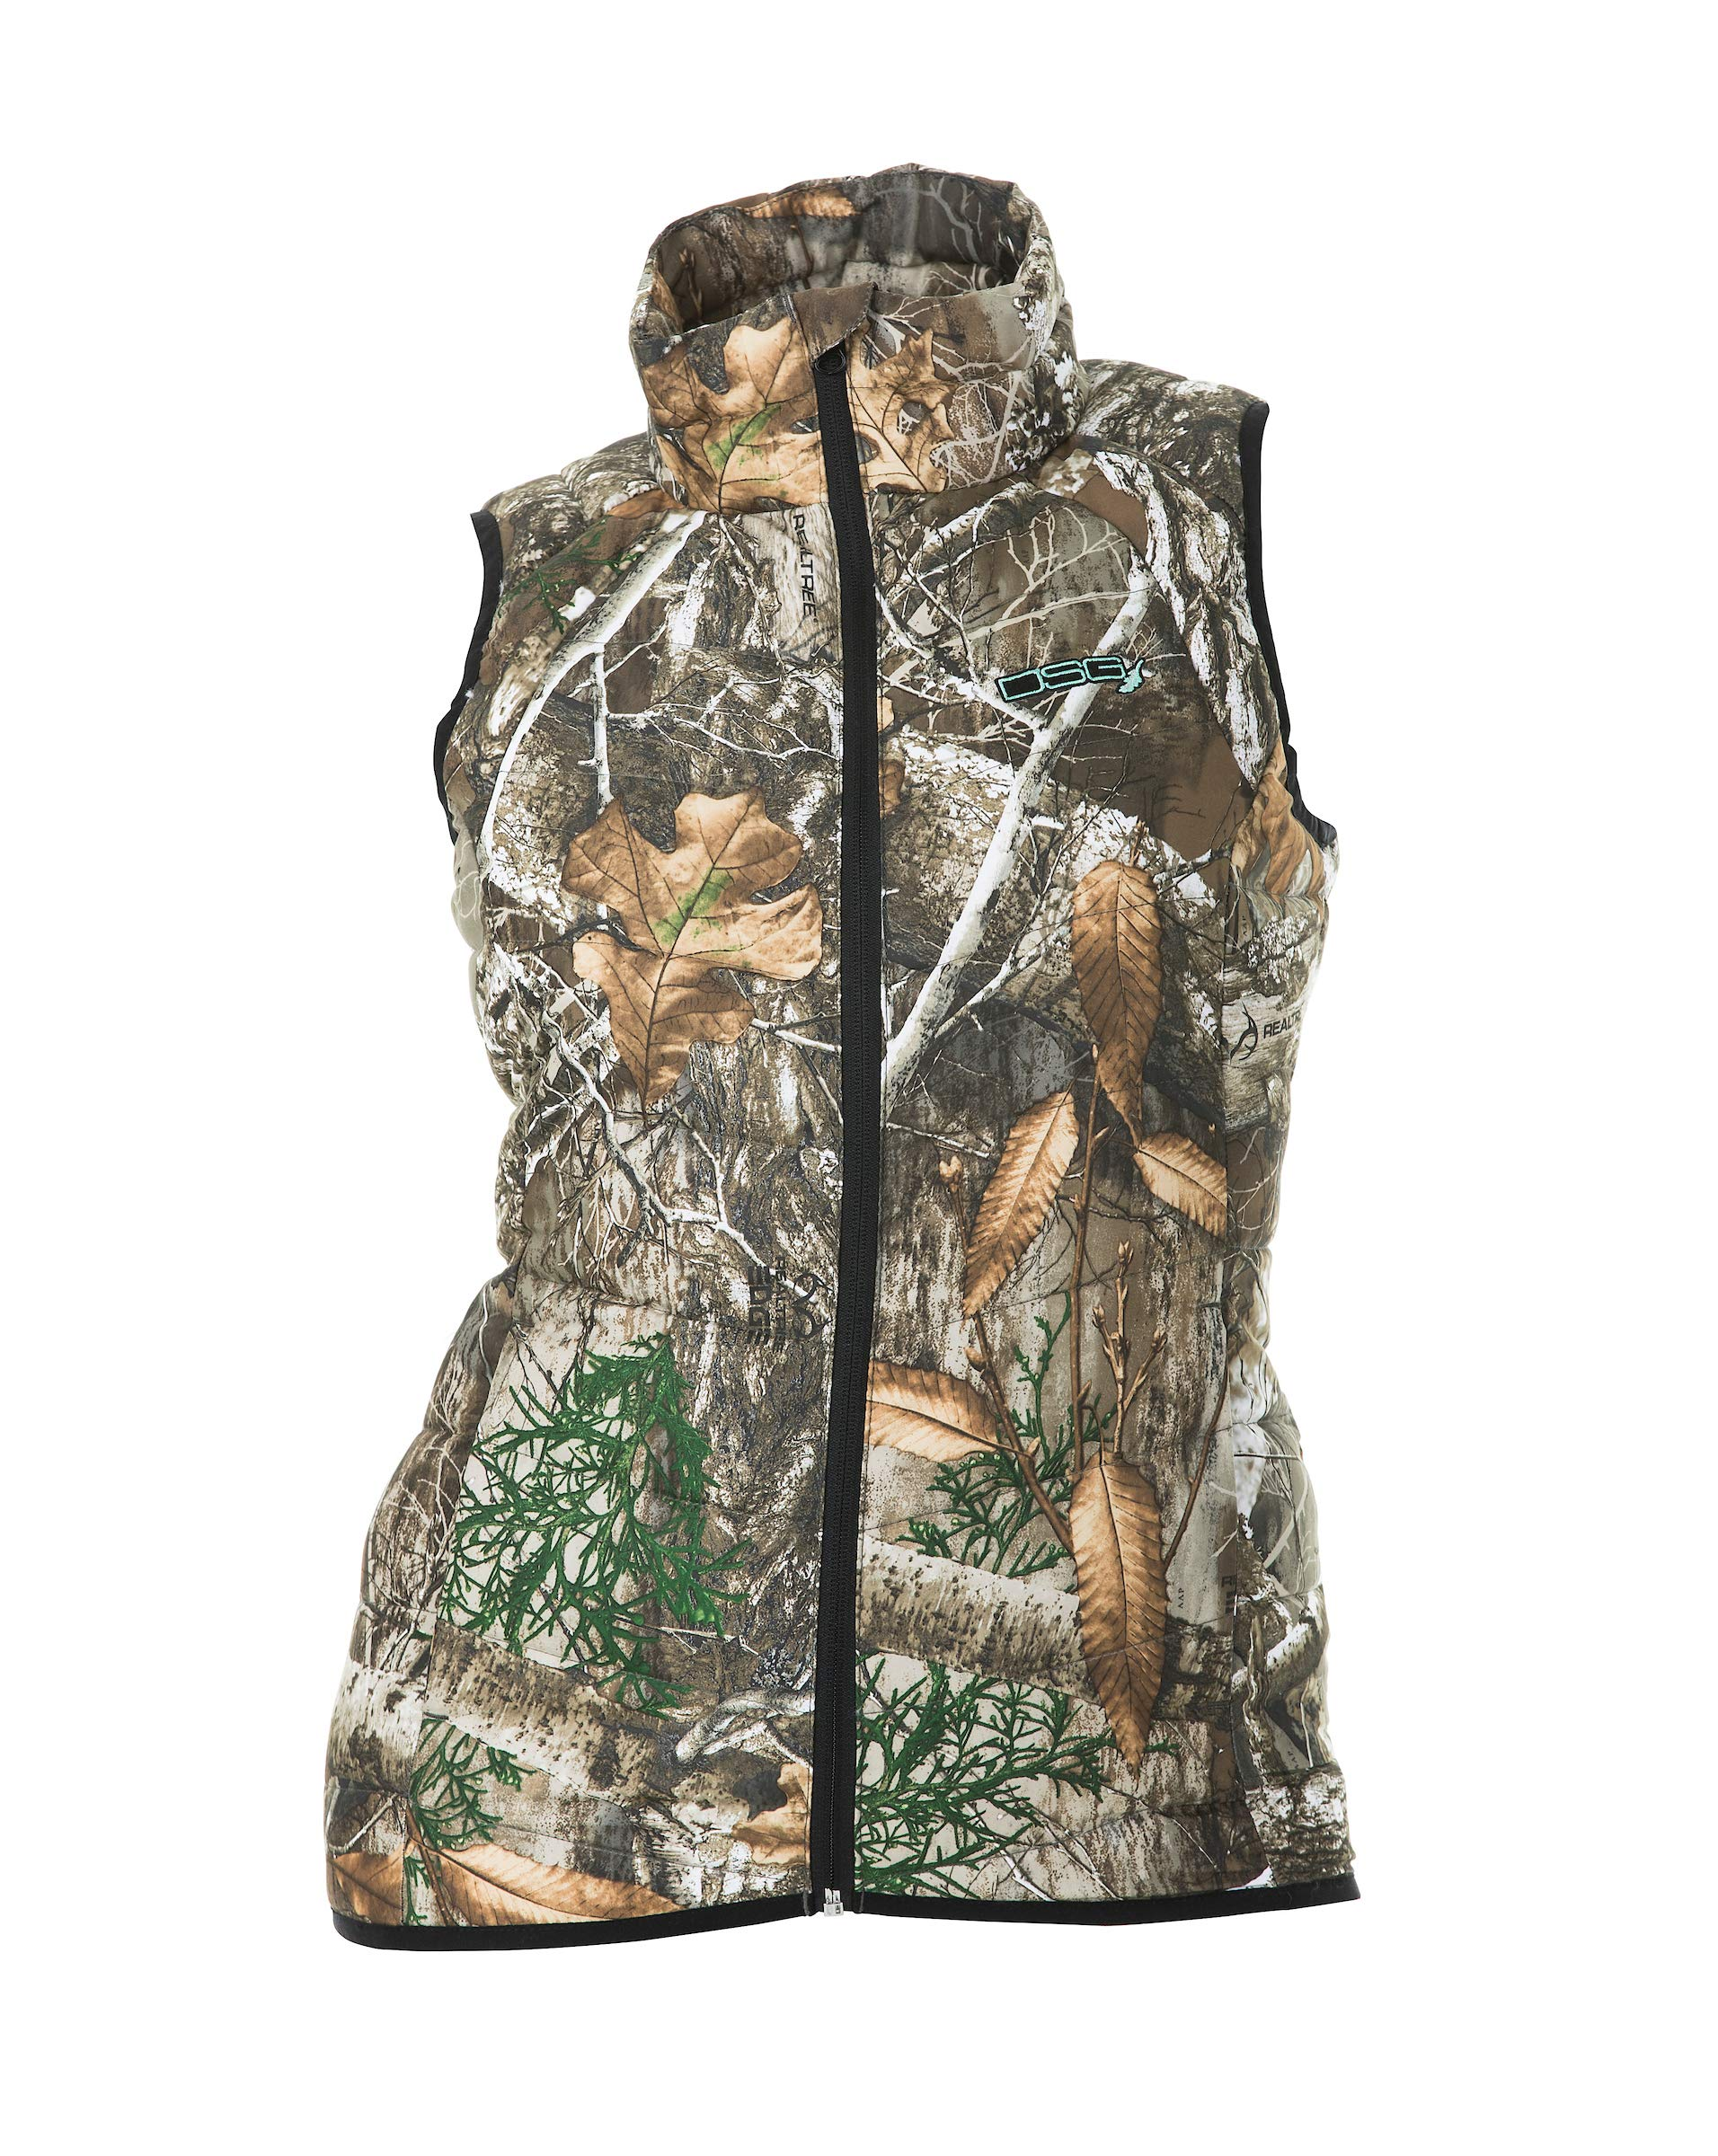 DSG Outerwear Womens Hunting Puffer Vest (Realtree Edge, 2XL) by DSG Outerwear